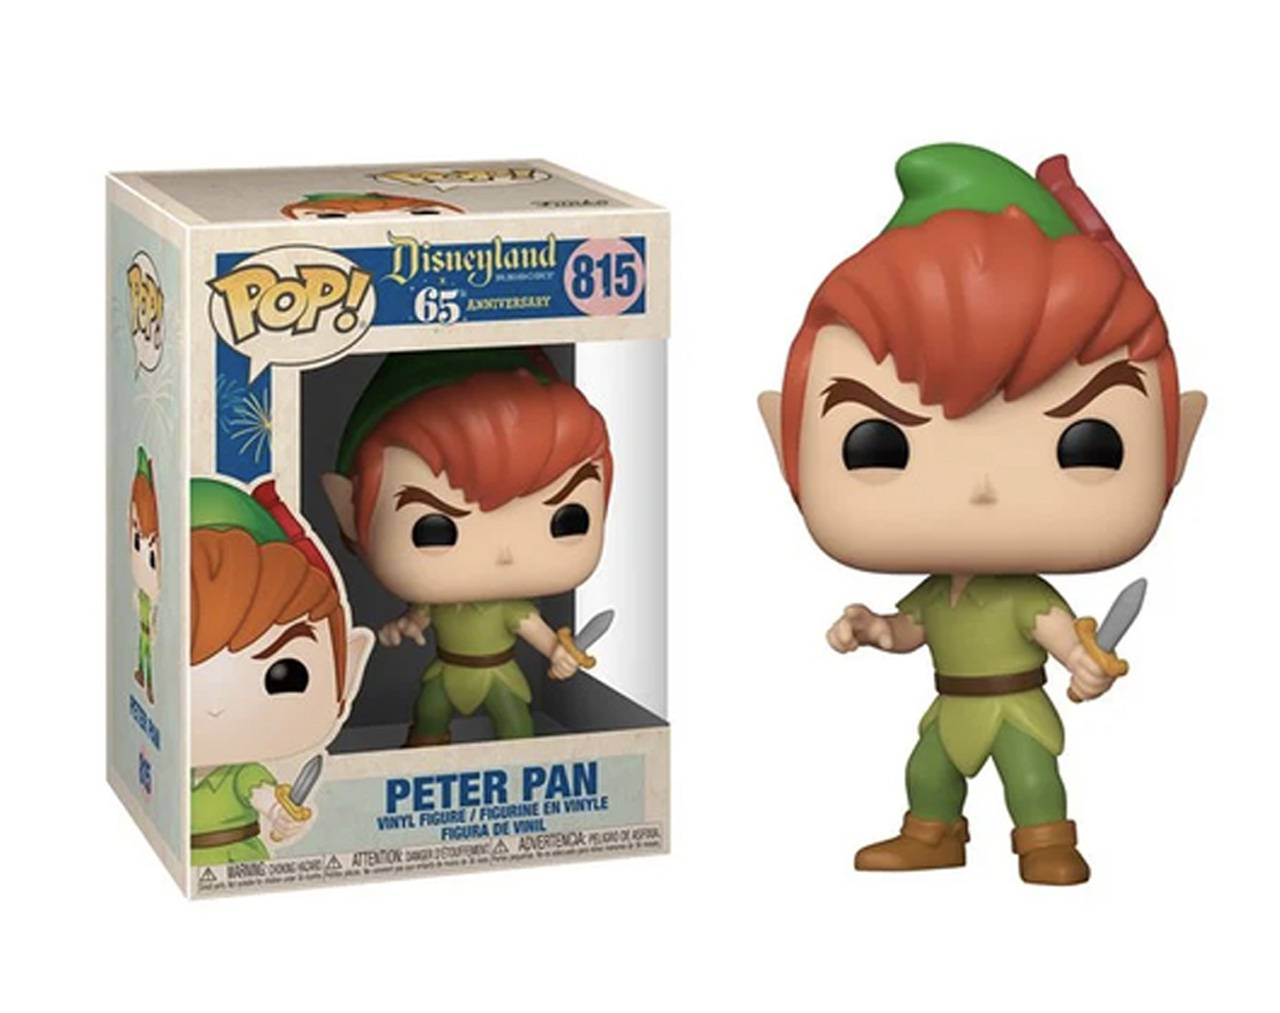 Peter Pan (Disneyland 65th Anniversary) Pop Vinyl